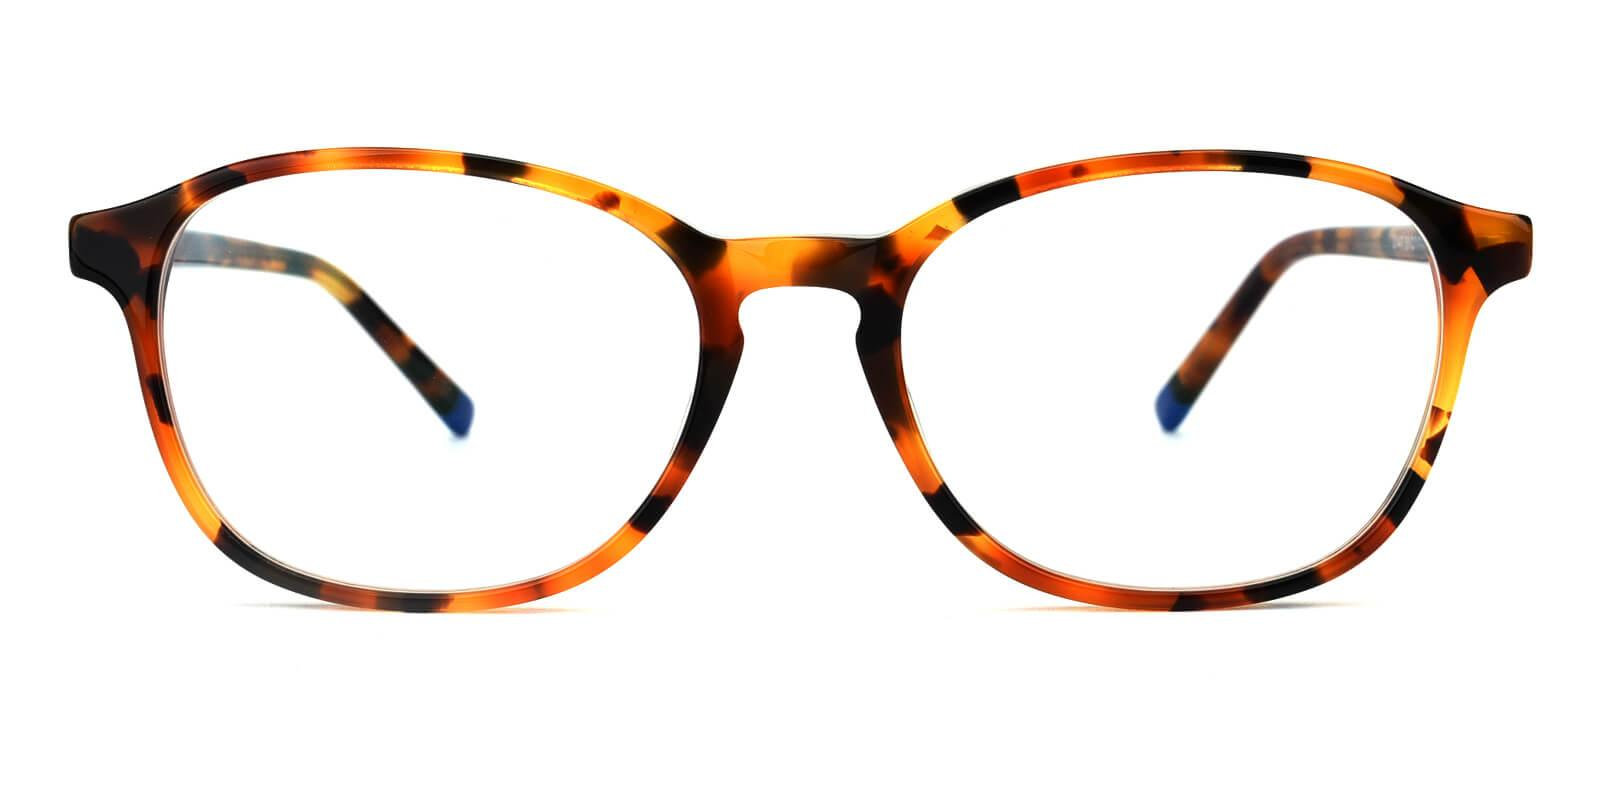 Lisbon-Tortoise-Square-Acetate-Eyeglasses-additional2